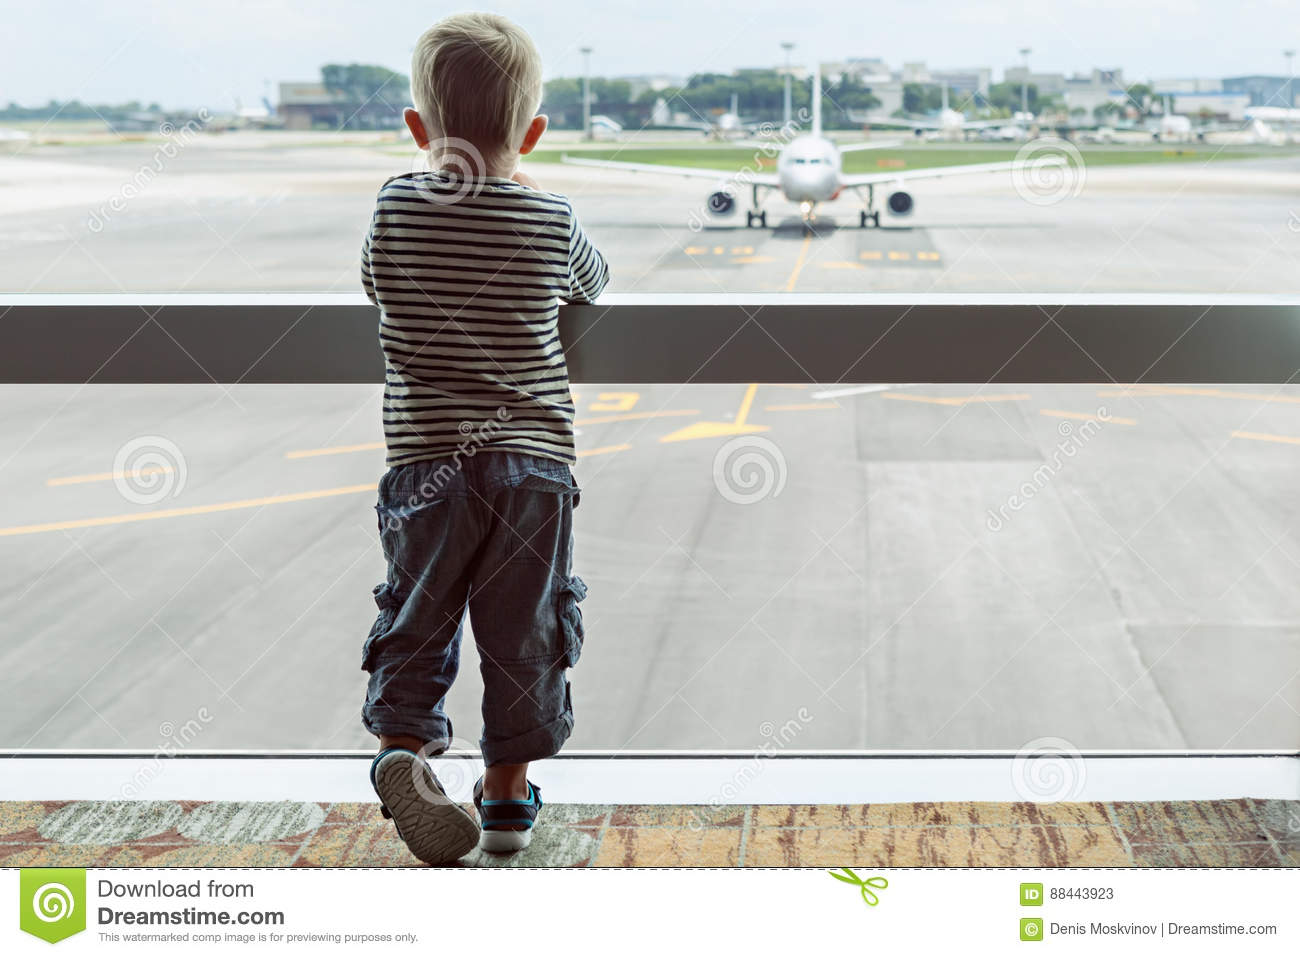 Dans le hall d 39 a roport l 39 enfant regarde l 39 avion par la for Regarder par la fenetre